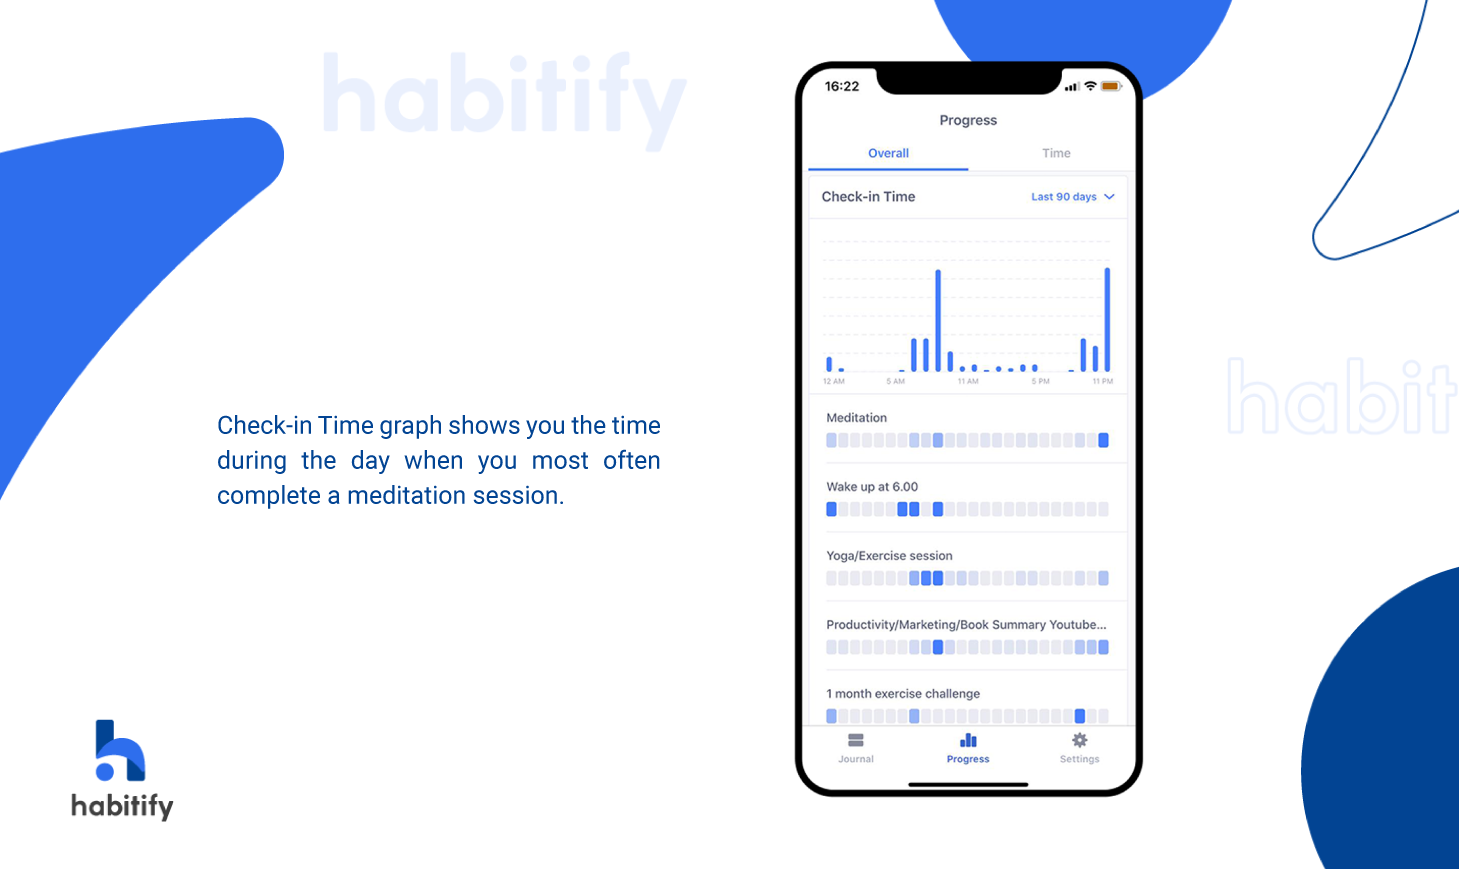 Habitify Check-in Time, Use check-in time for meditation habits